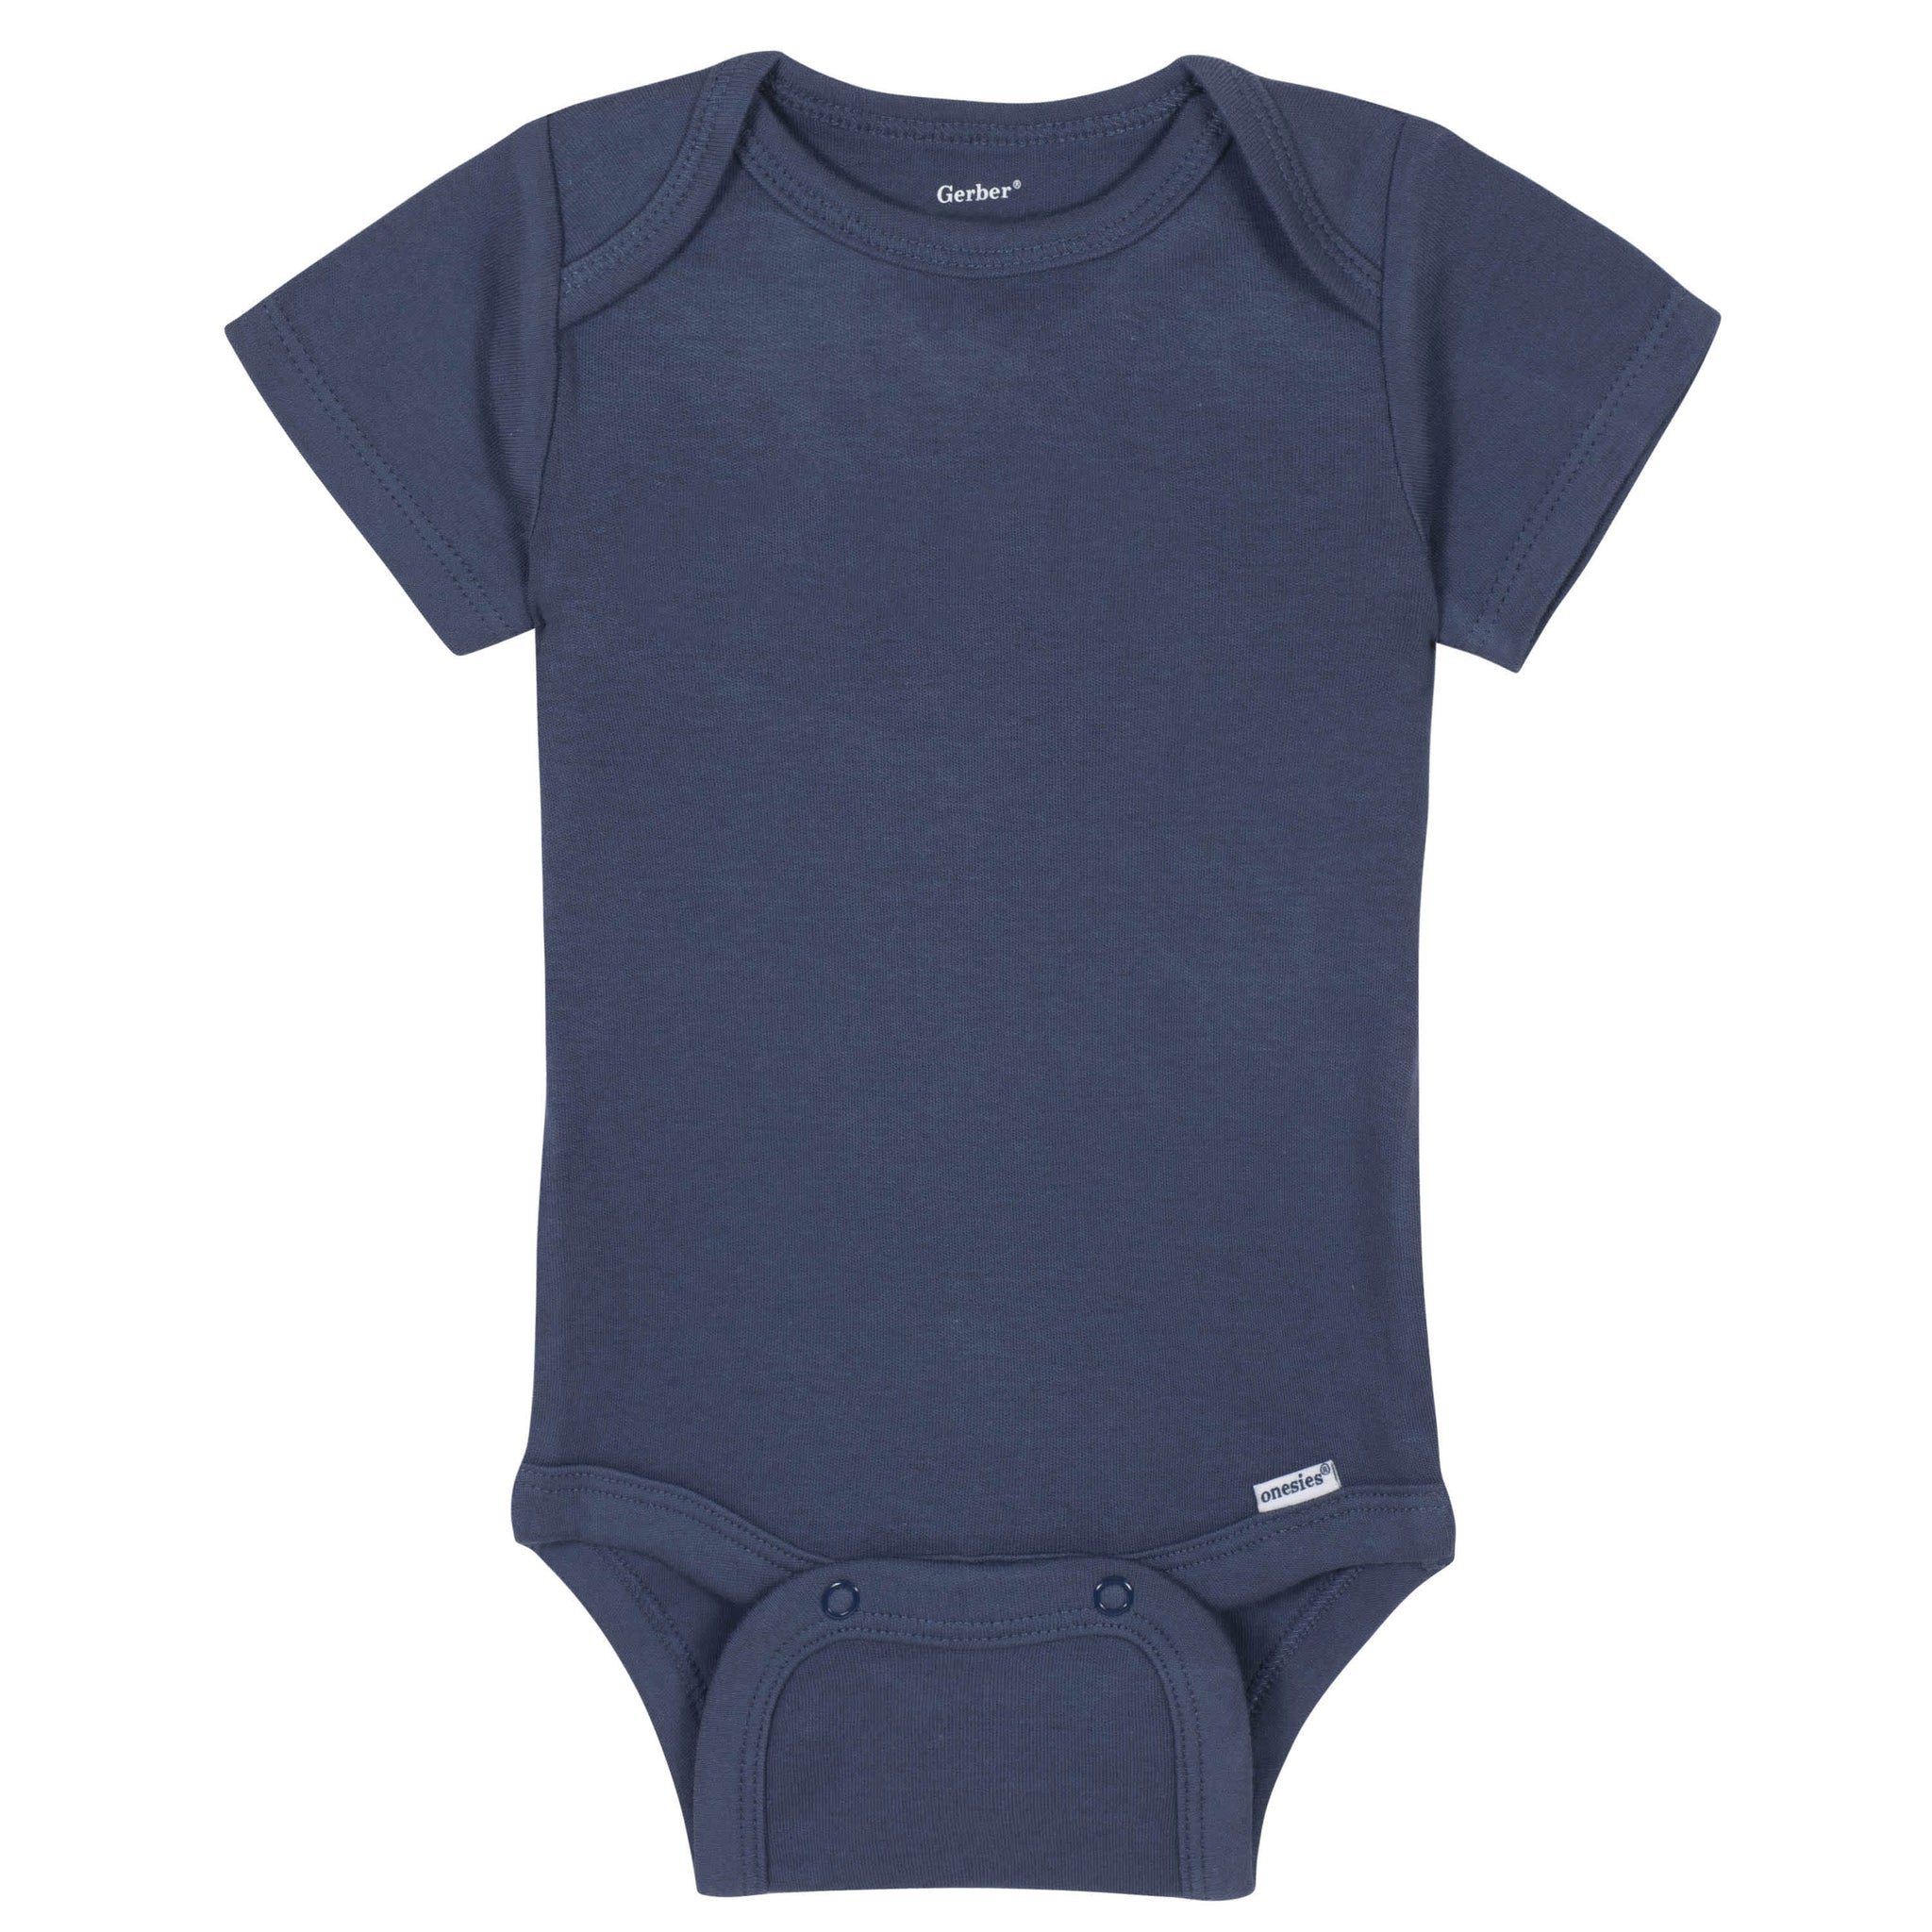 Gerber® Premium Navy Short Sleeve Onesies® Brand Bodysuit - 10 Colors Available